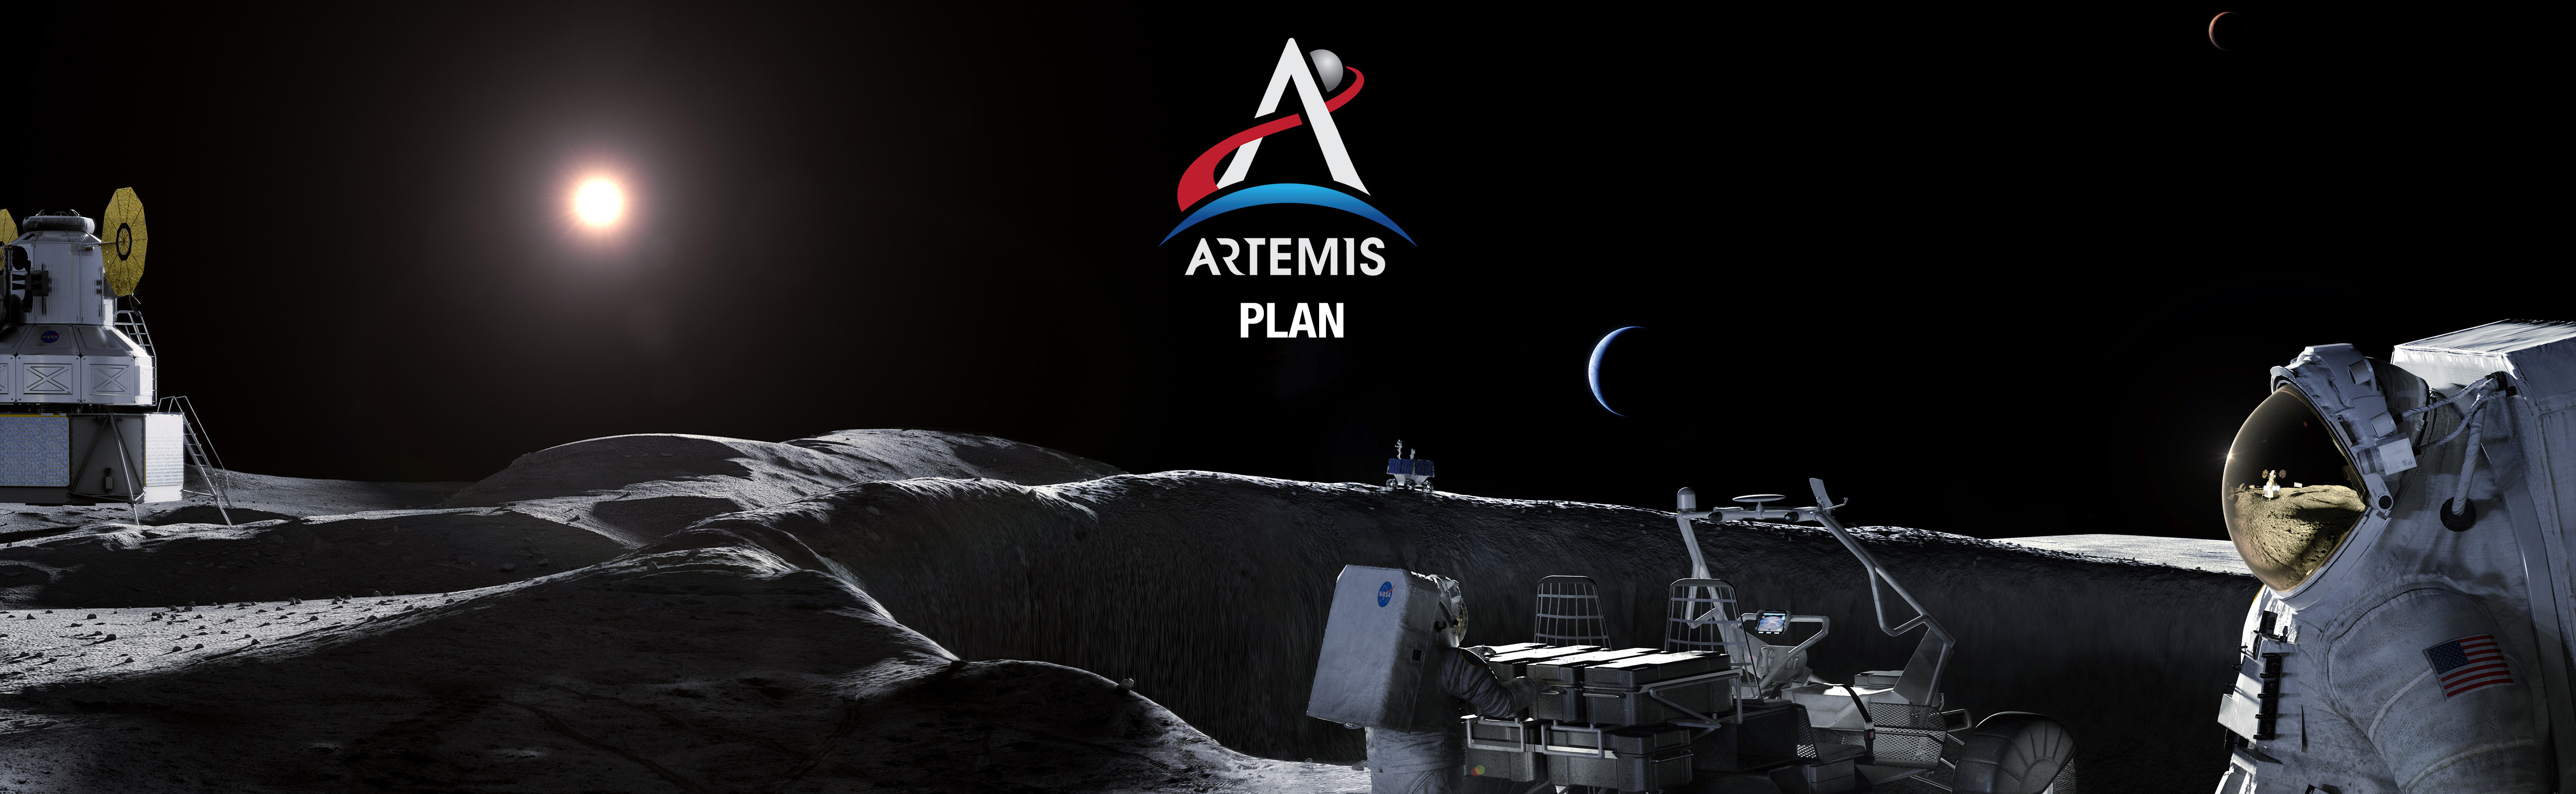 Banner with Artemis Logo